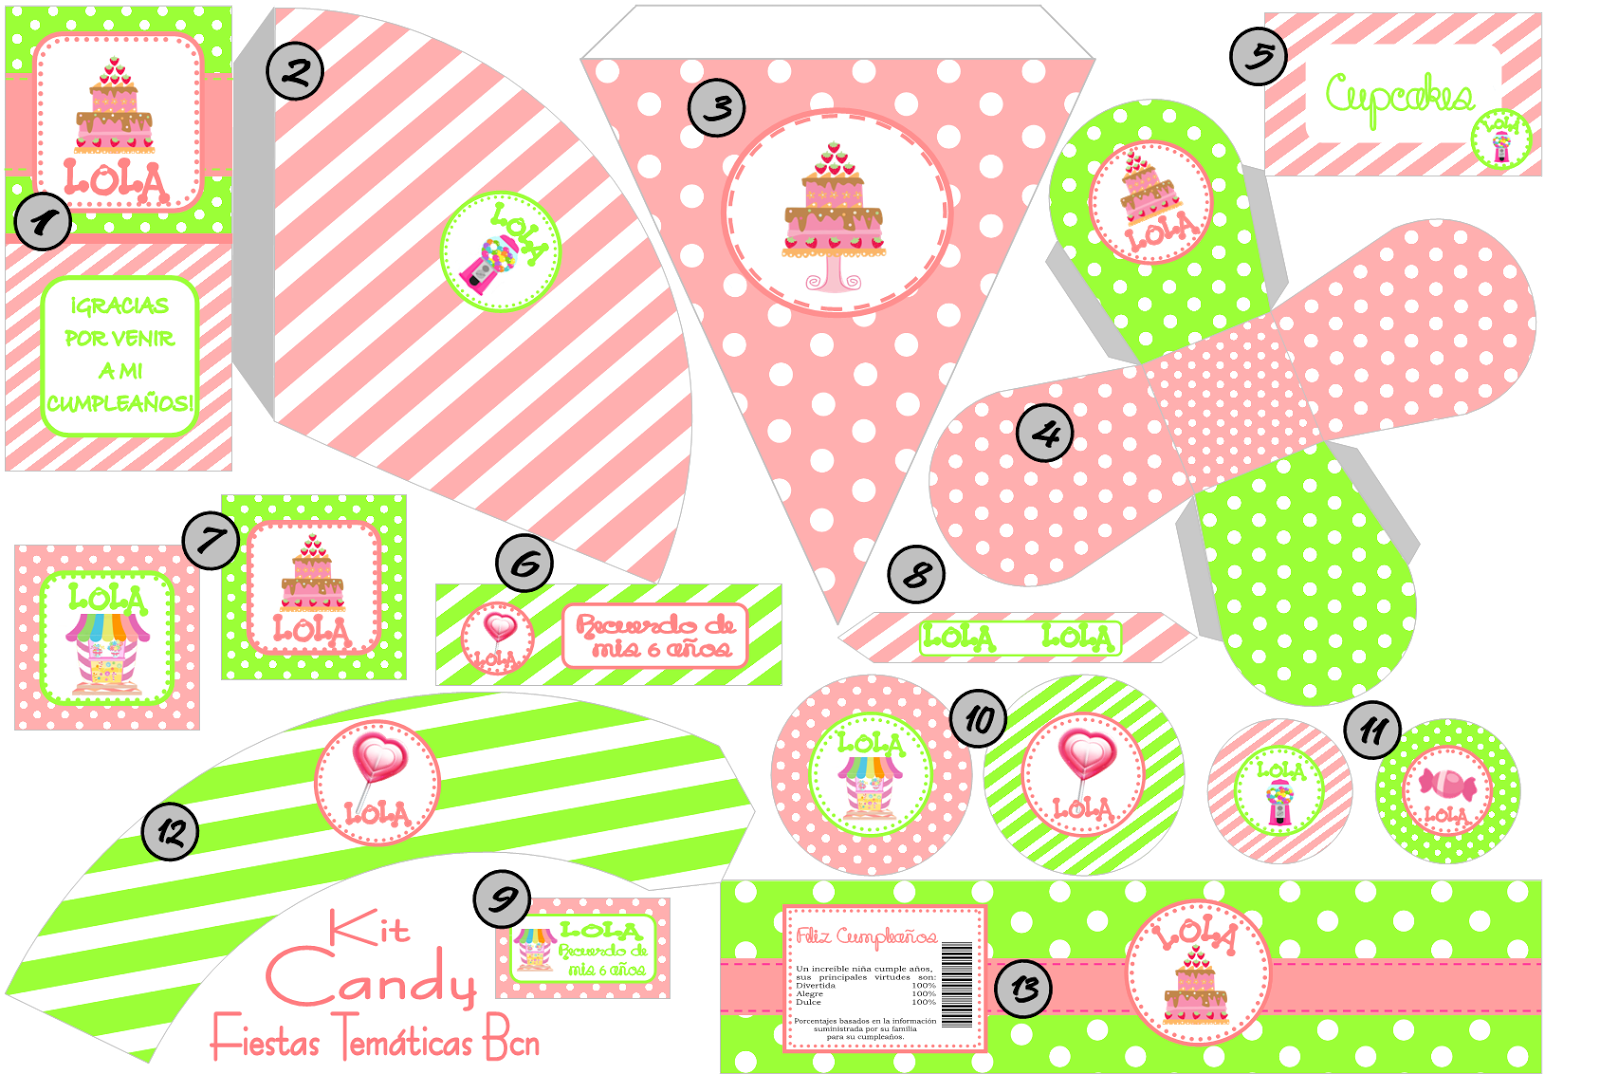 resumen kit candy bar cupcakes decorados un kit muy dulce y delicado